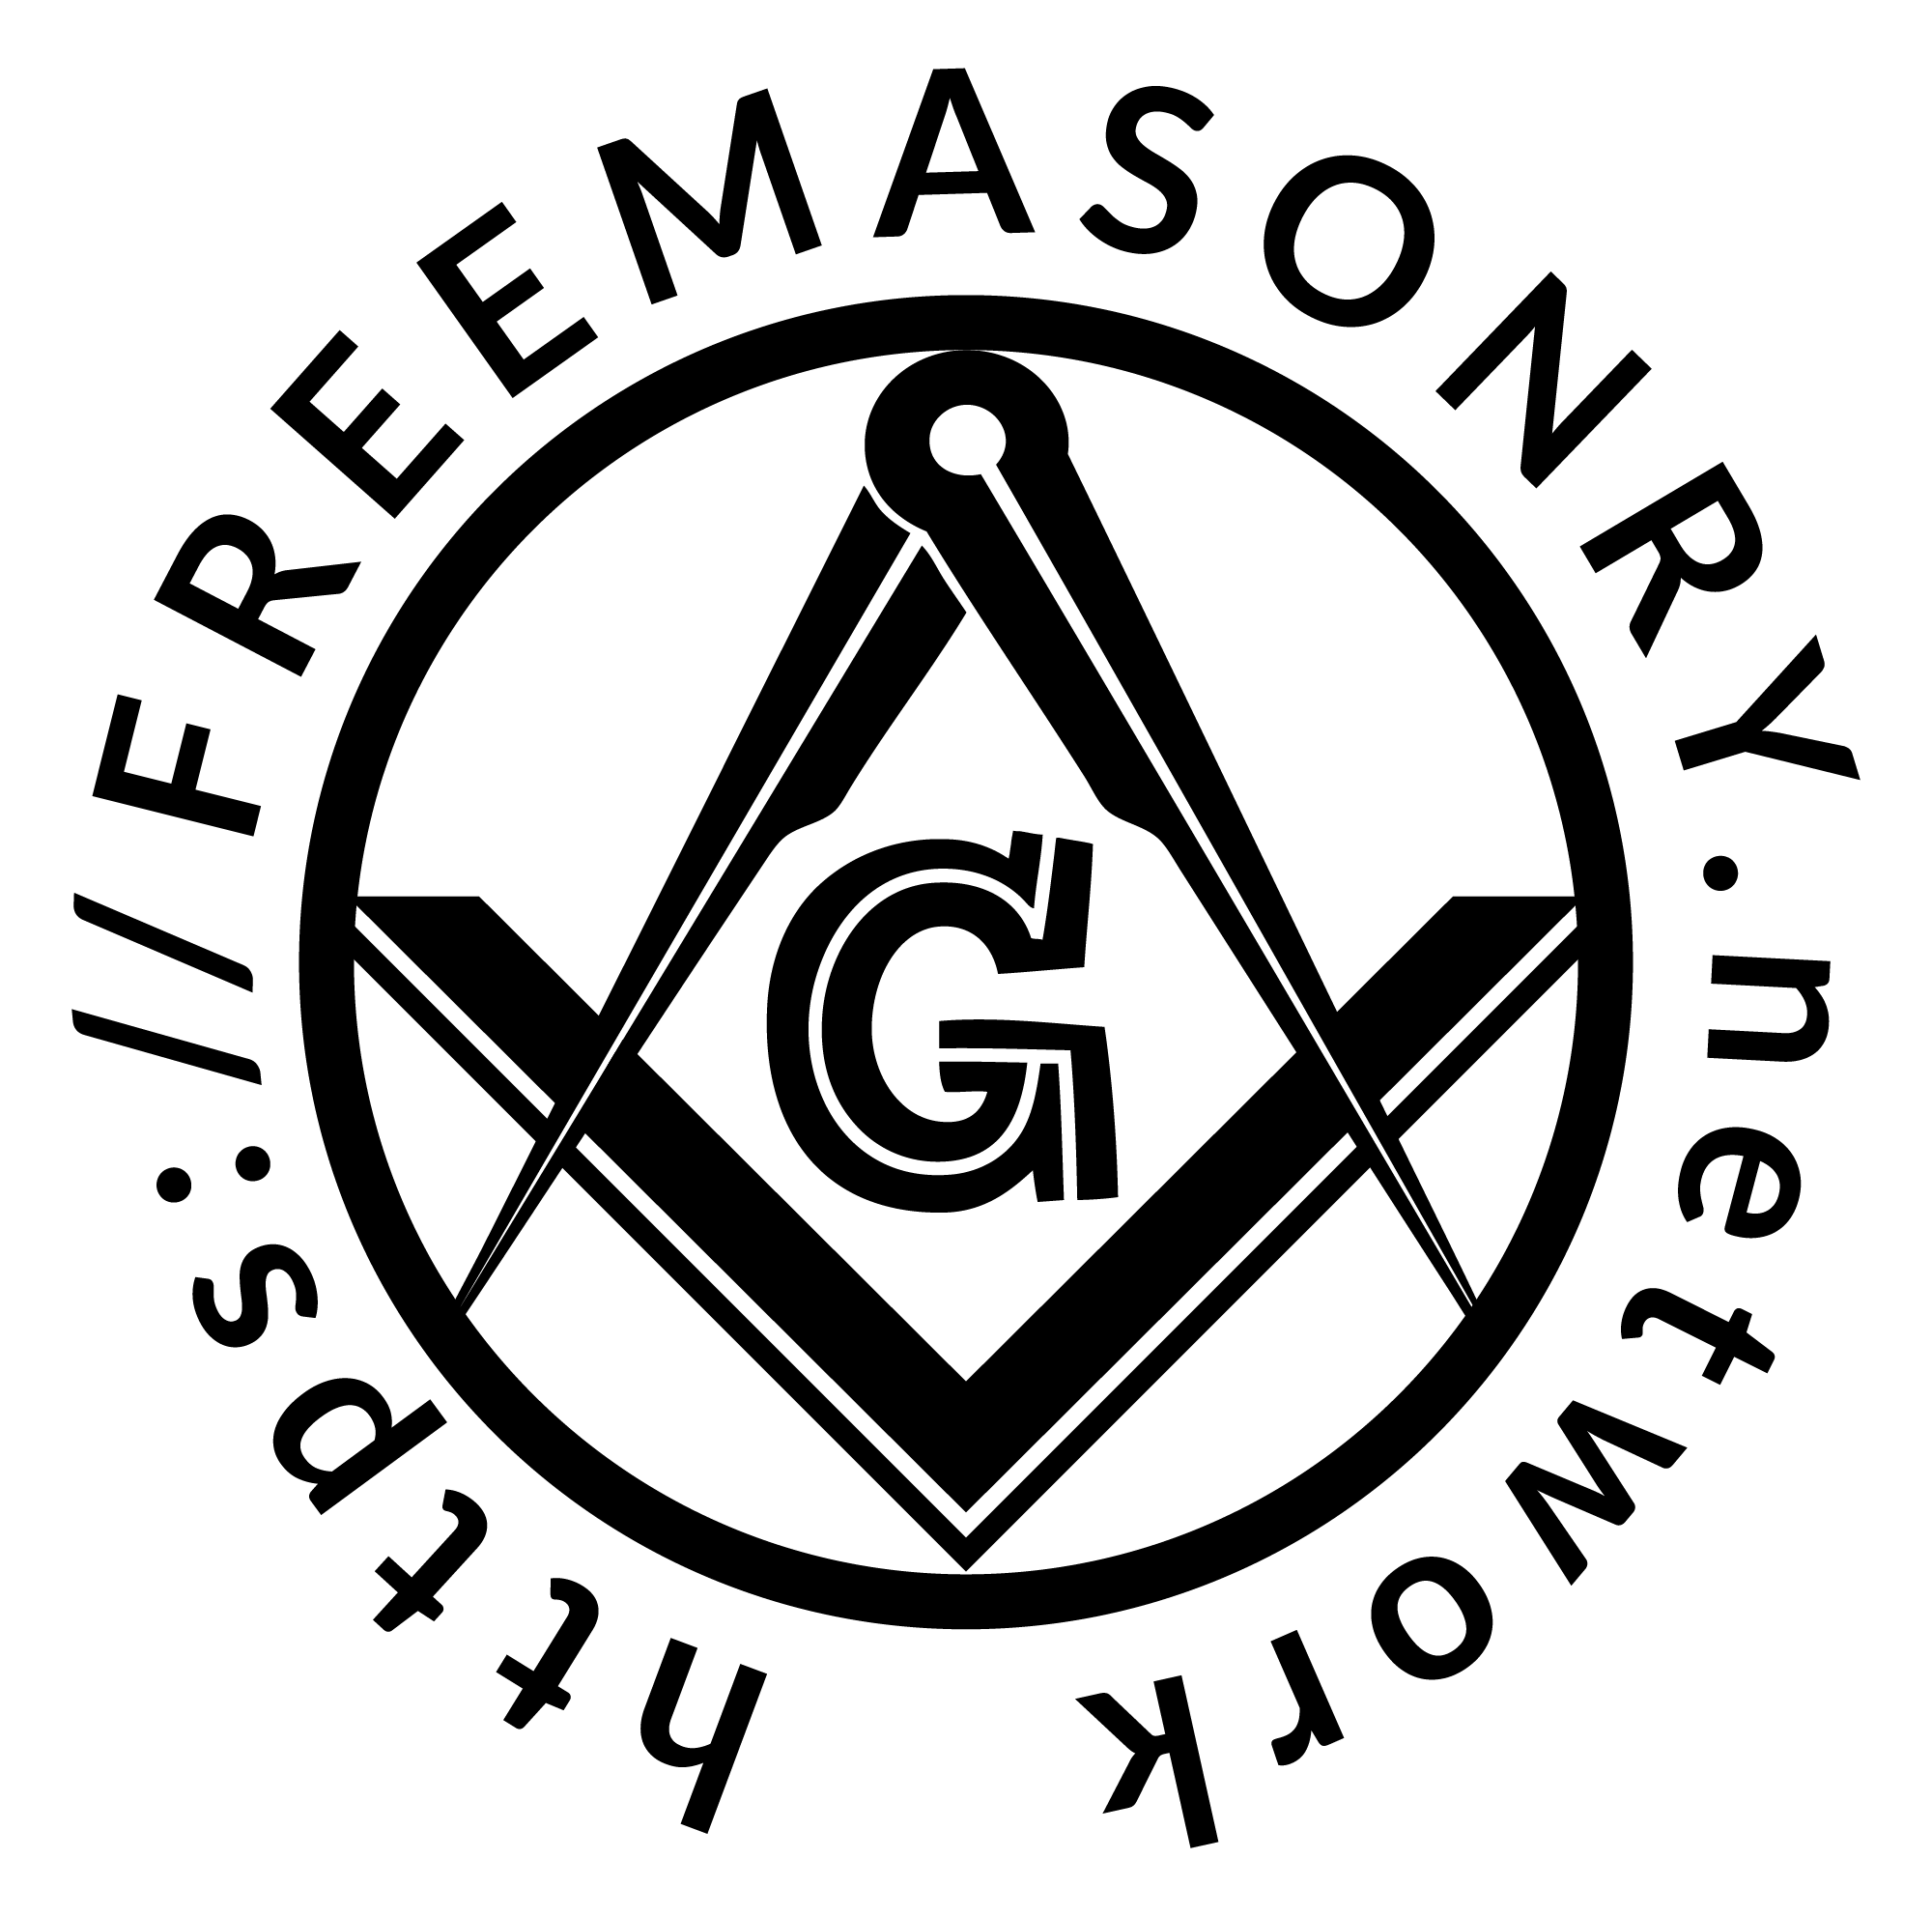 HISTORIANS OF FREEMASONRY